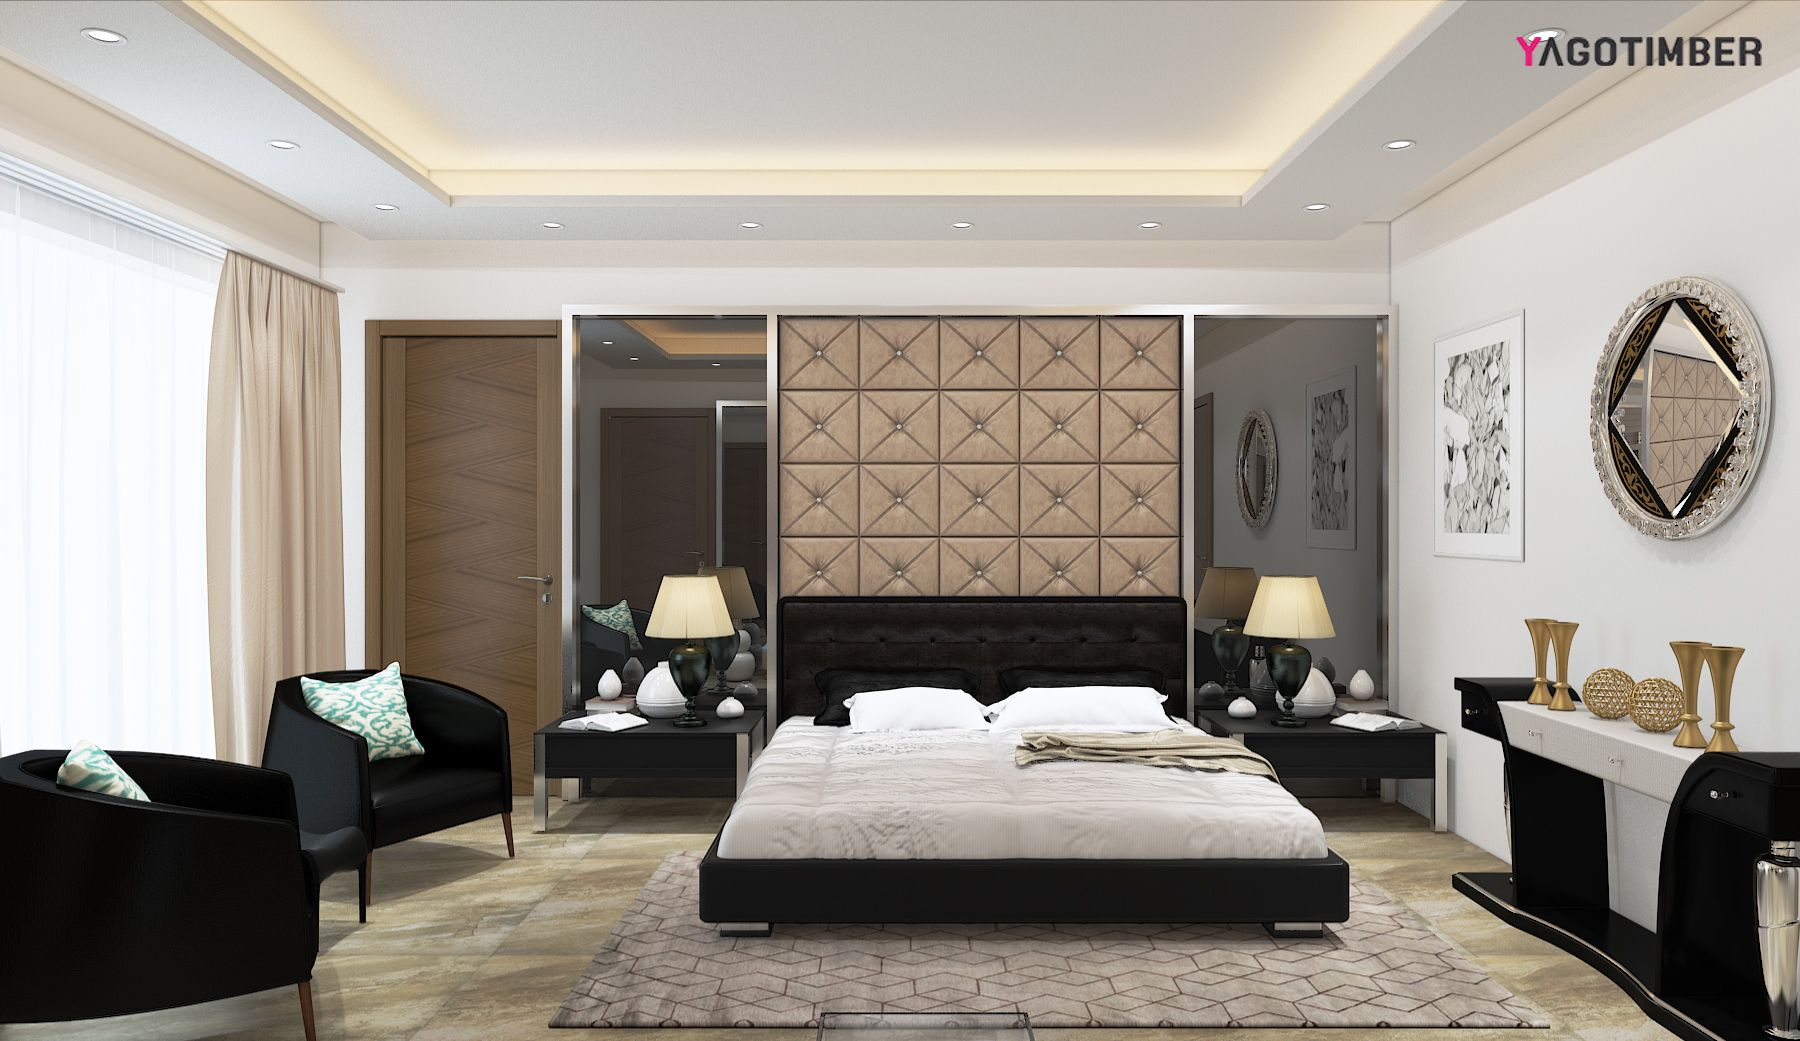 Bedroom Designing Get A Brand New #3Bhkbedroom Interior Design For Your Home At